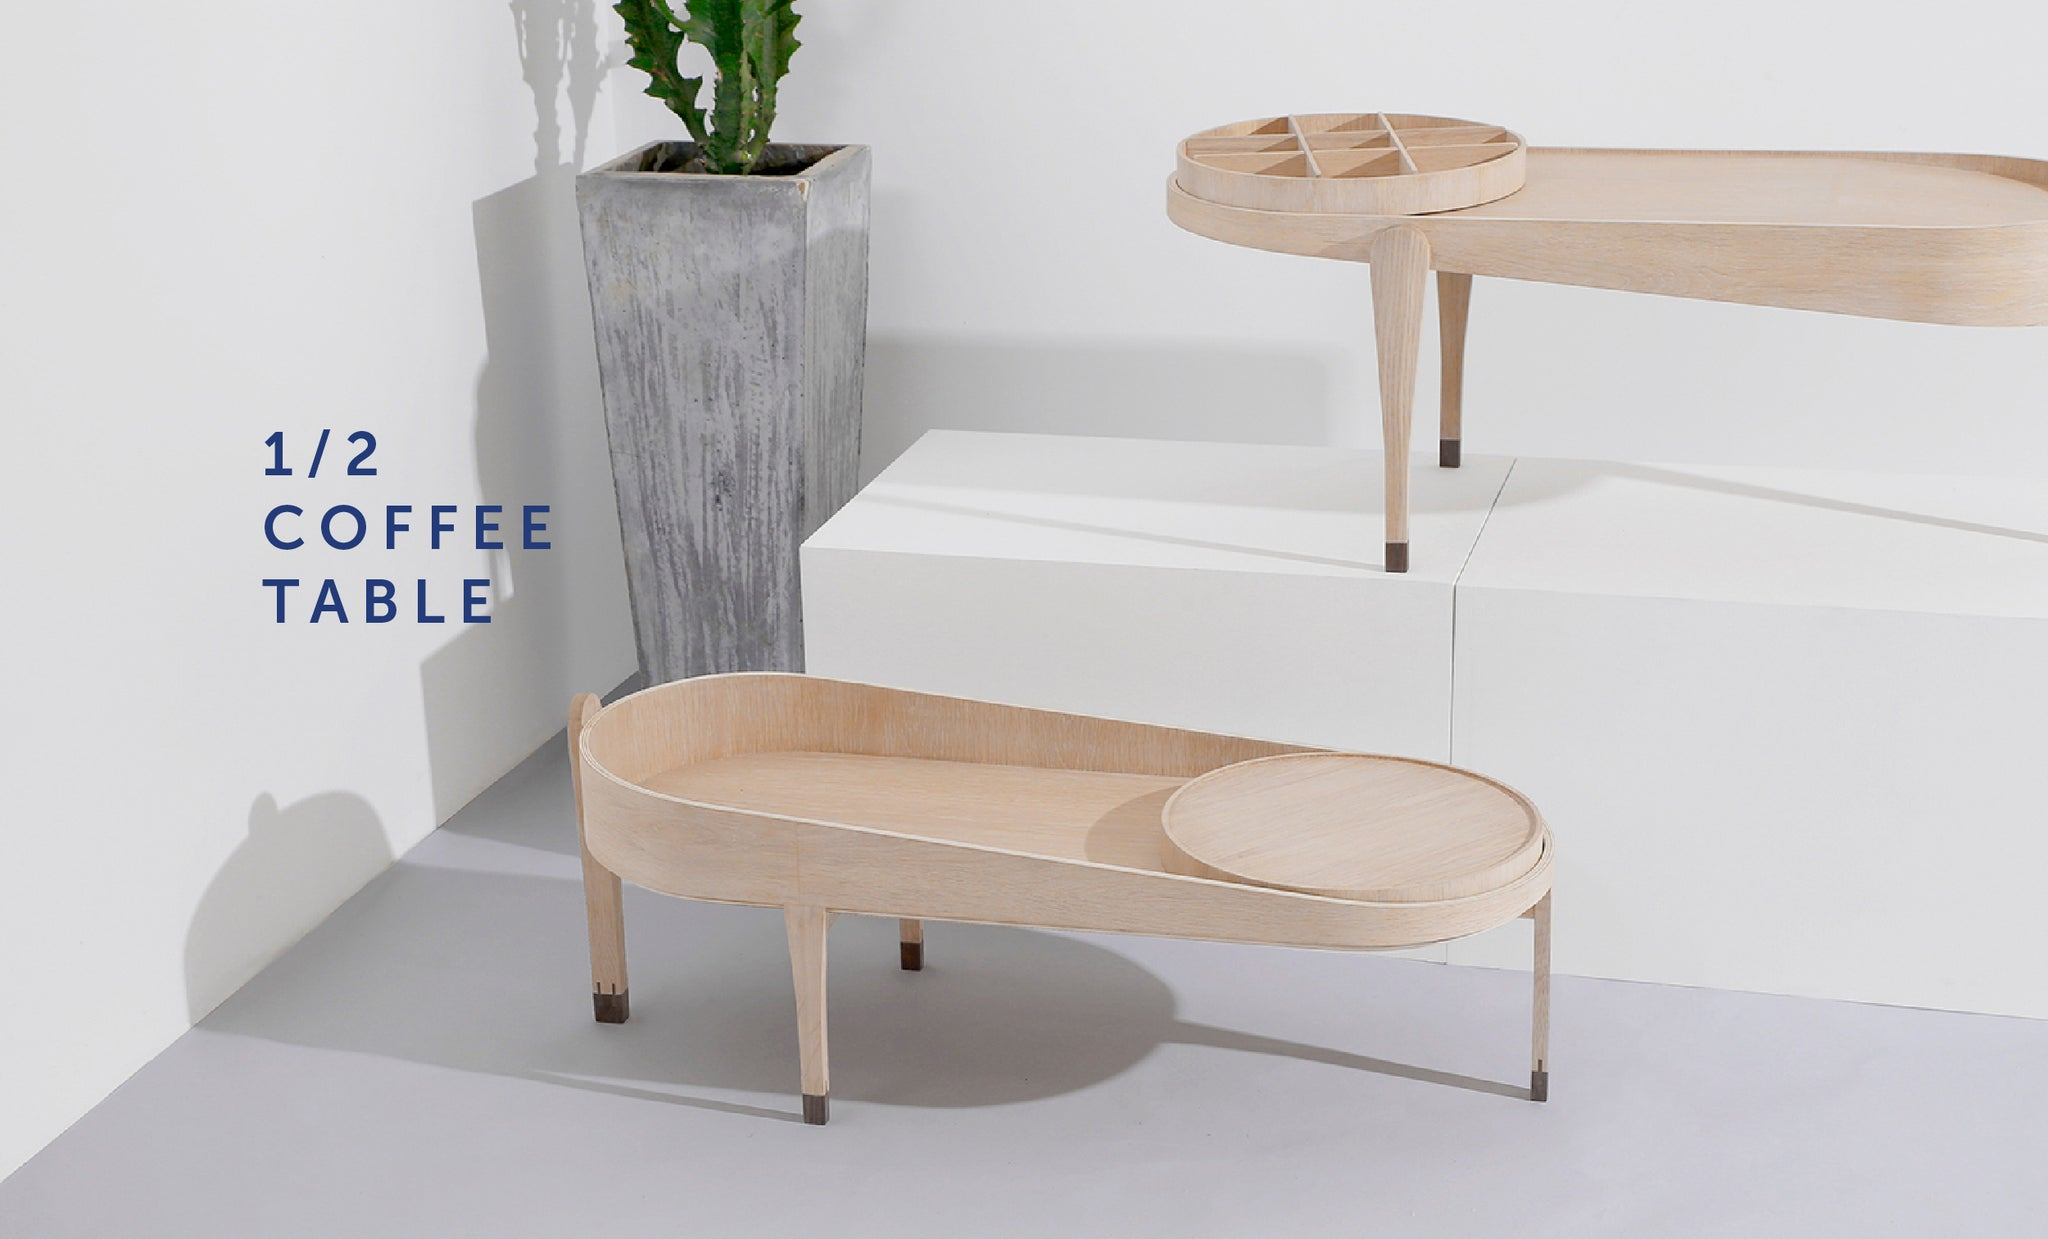 1/2 Coffee Table from Playful Angles Furniture Collection by Ziinlife